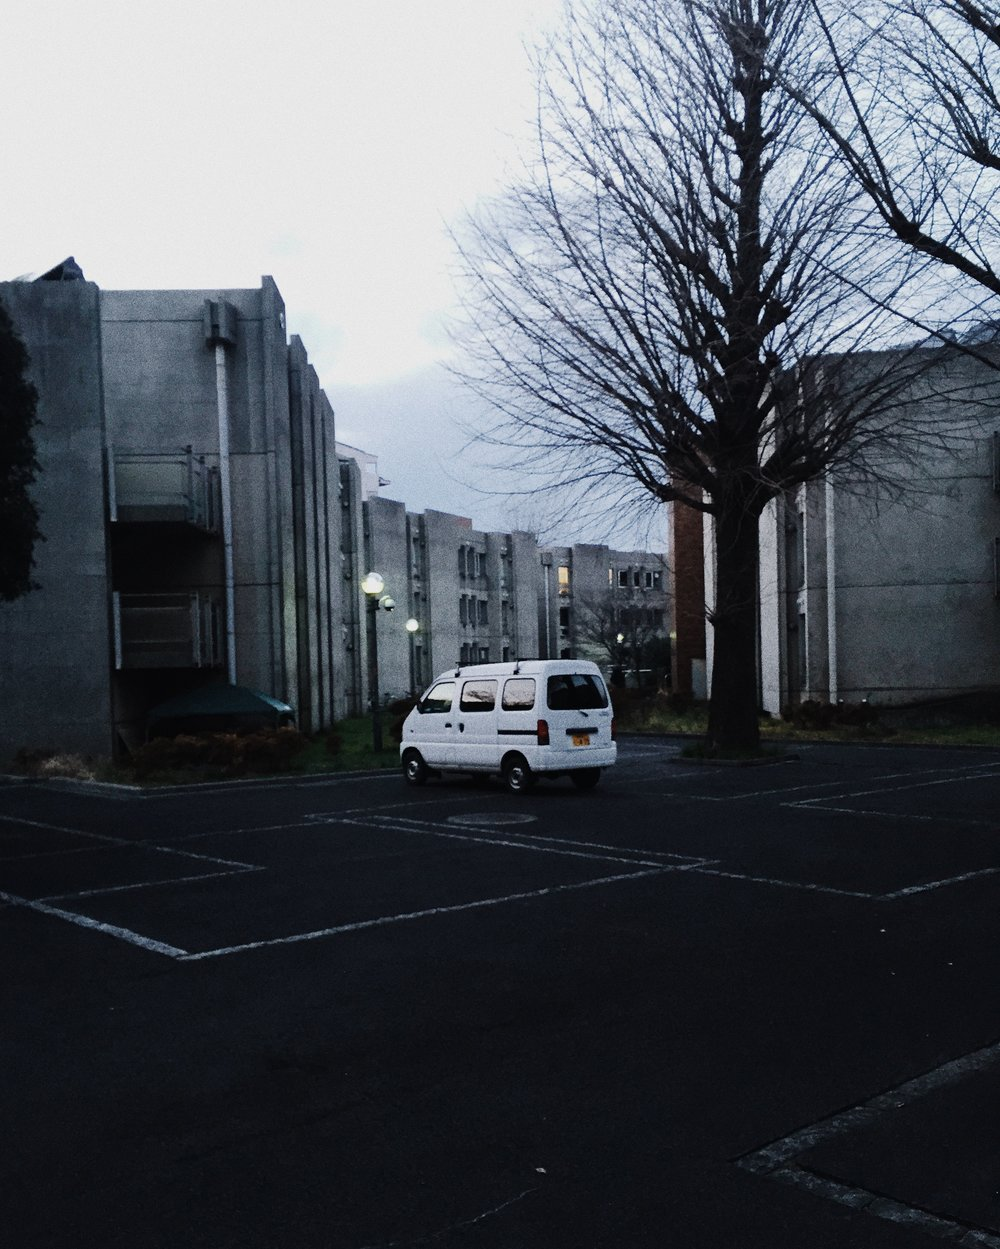 Mitaka International Hall of Residence, Winter 2015.